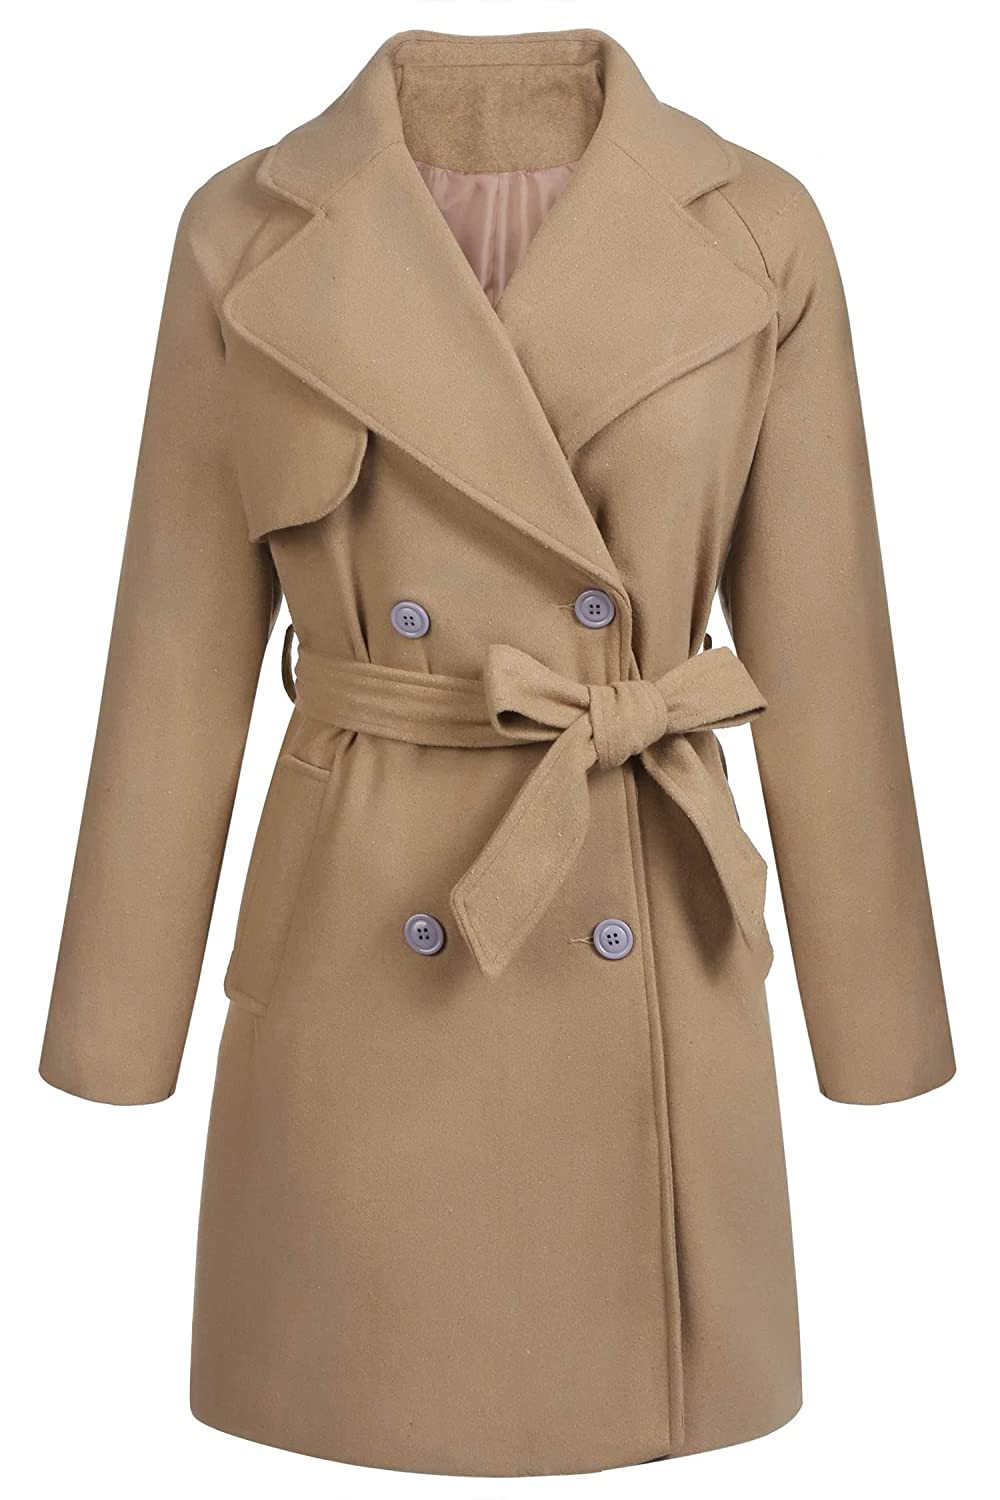 Yayado Womens Pea Coat Lapel Double-Breasted Thick Trench Coat Jacket with Belt YOH022432